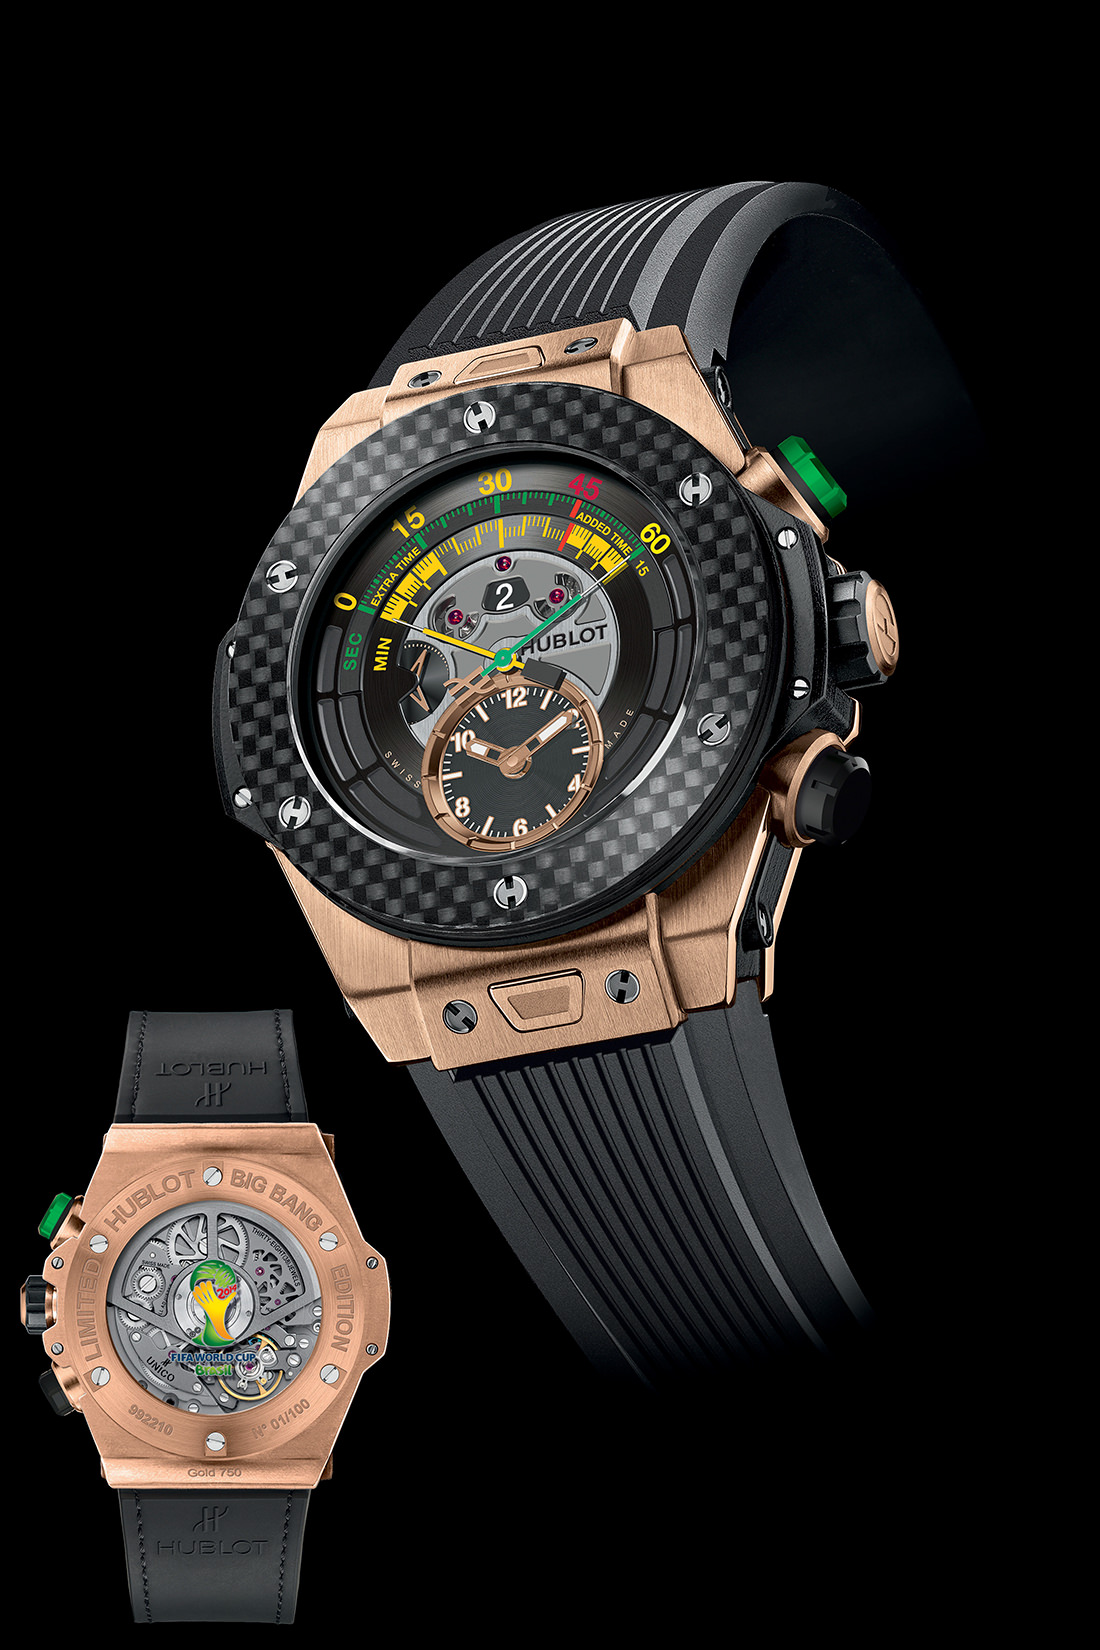 hublot-big-bang-unico-chrono-bi-retrograde-8